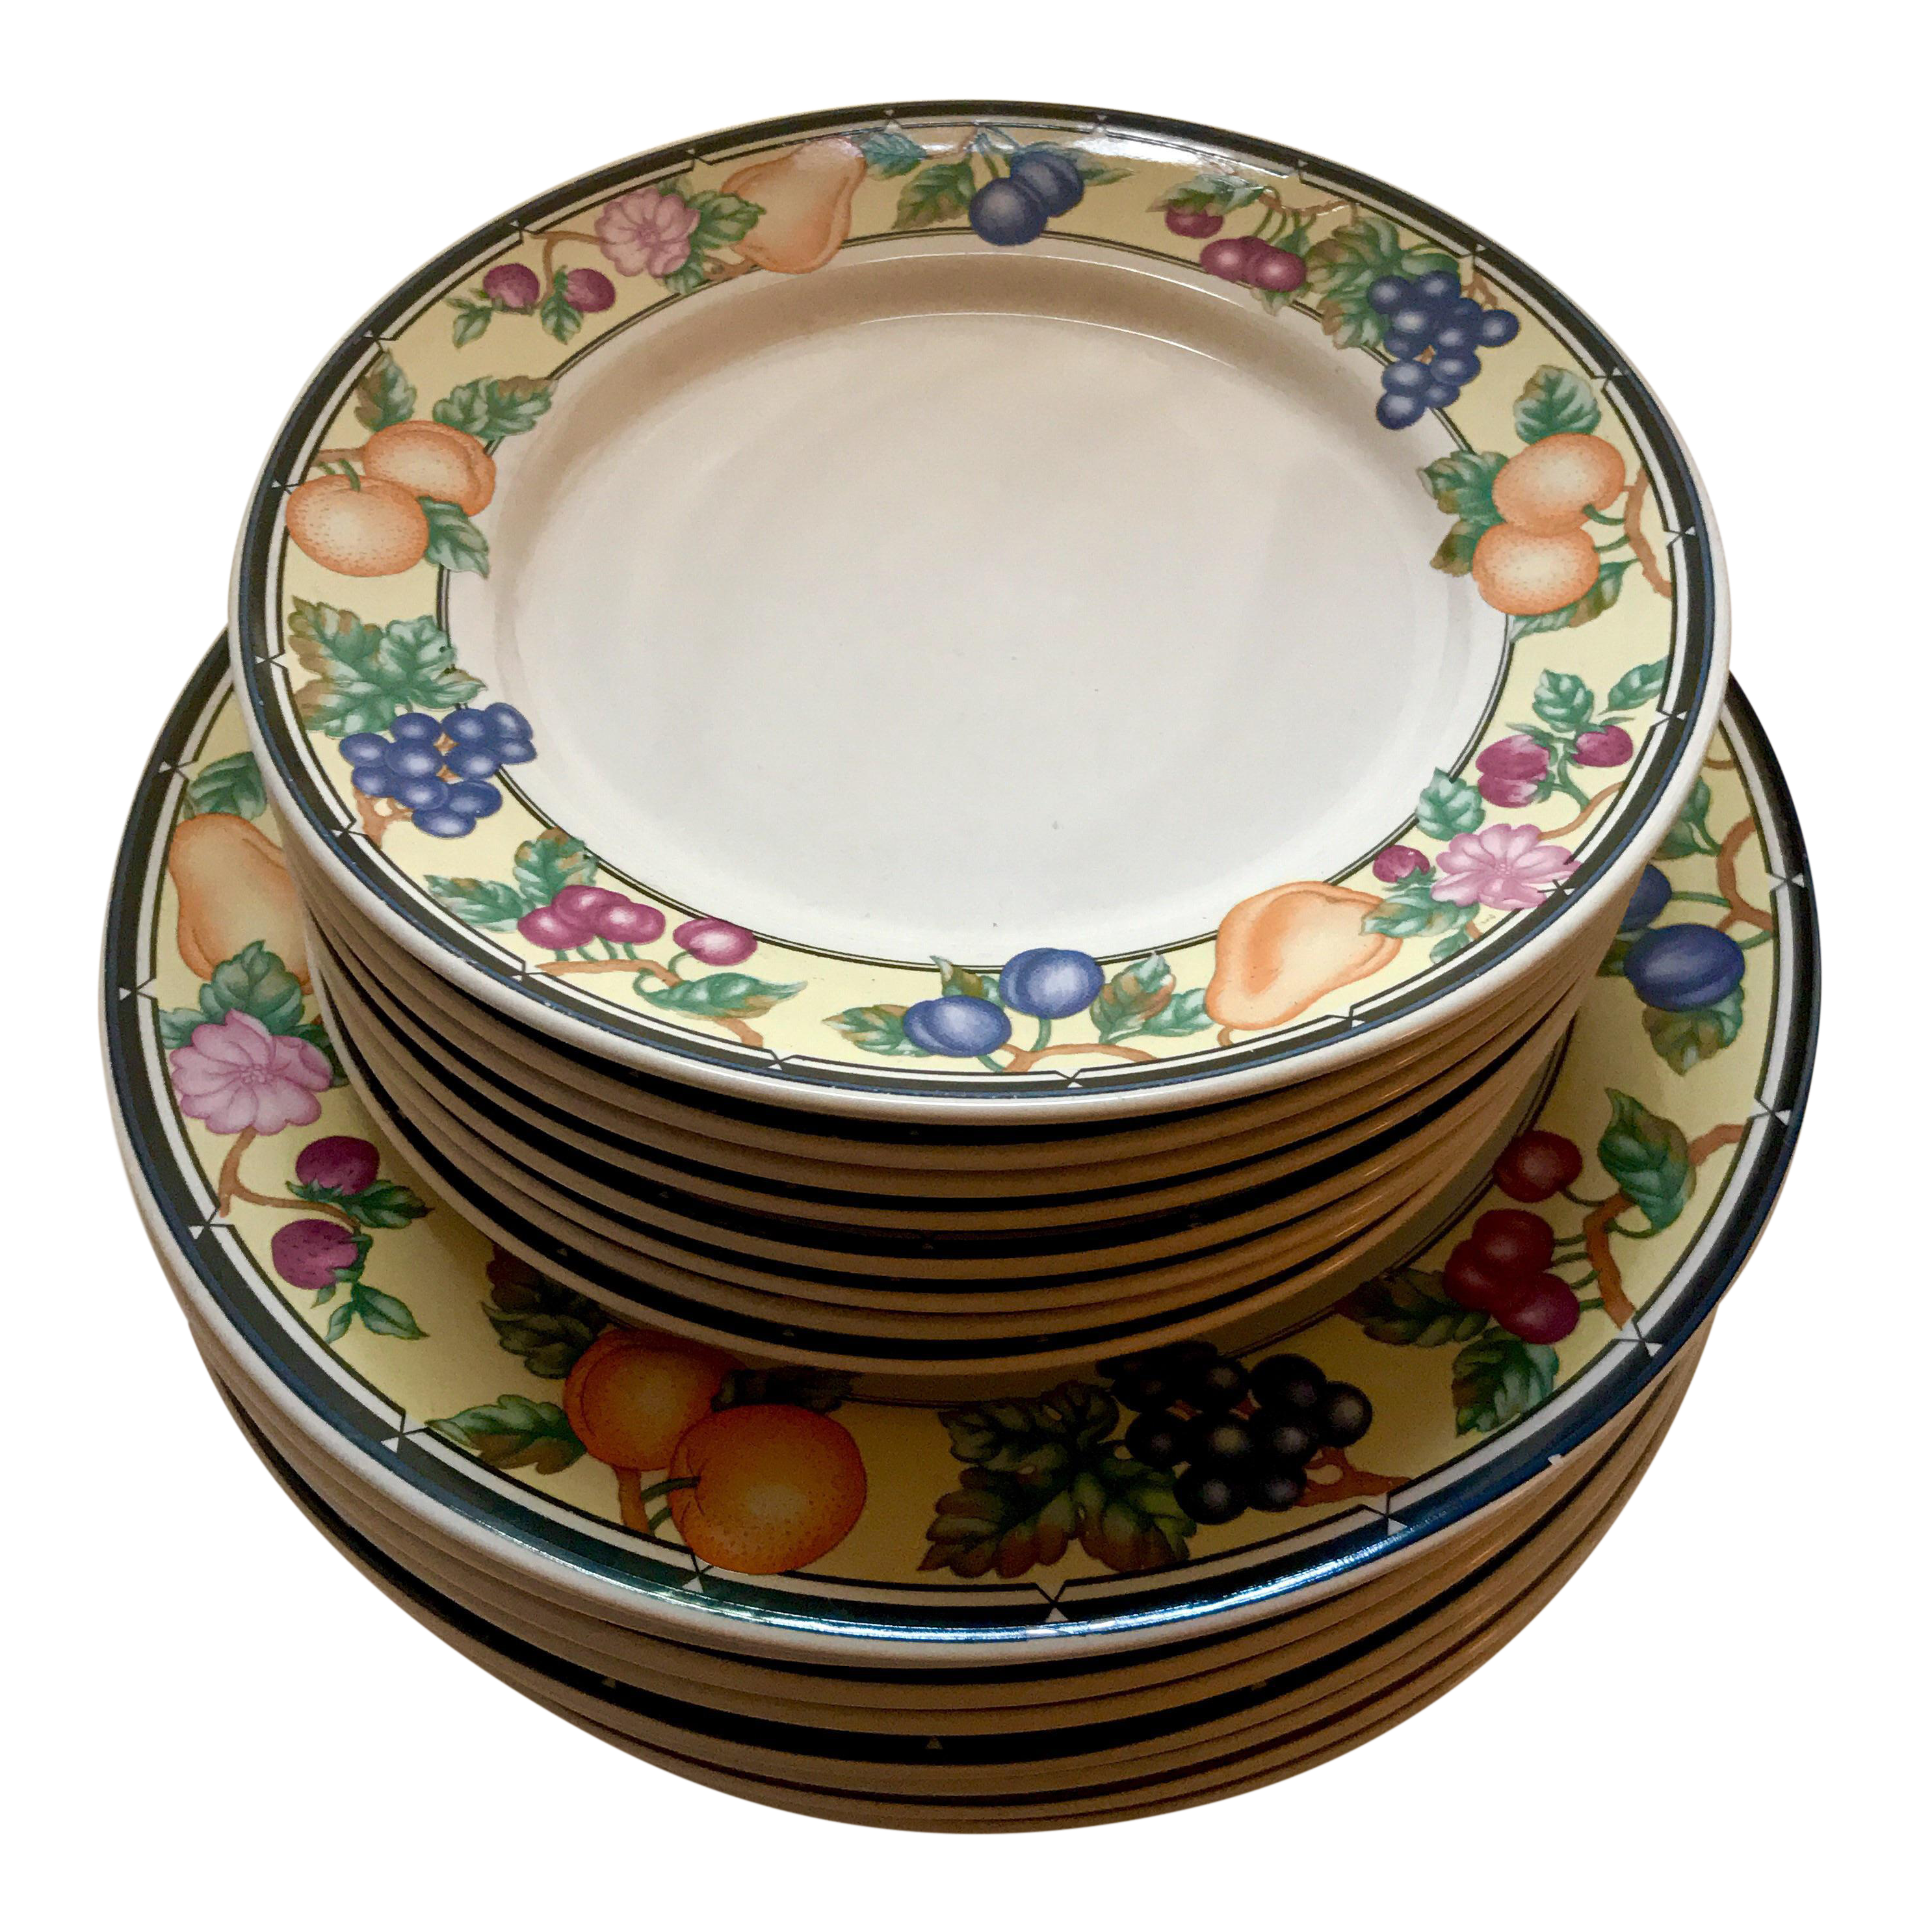 Oneida Orchard Select Dinner Plates u0026 Salad Plates - Set of 16  sc 1 st  Chairish : plates set of 16 - pezcame.com